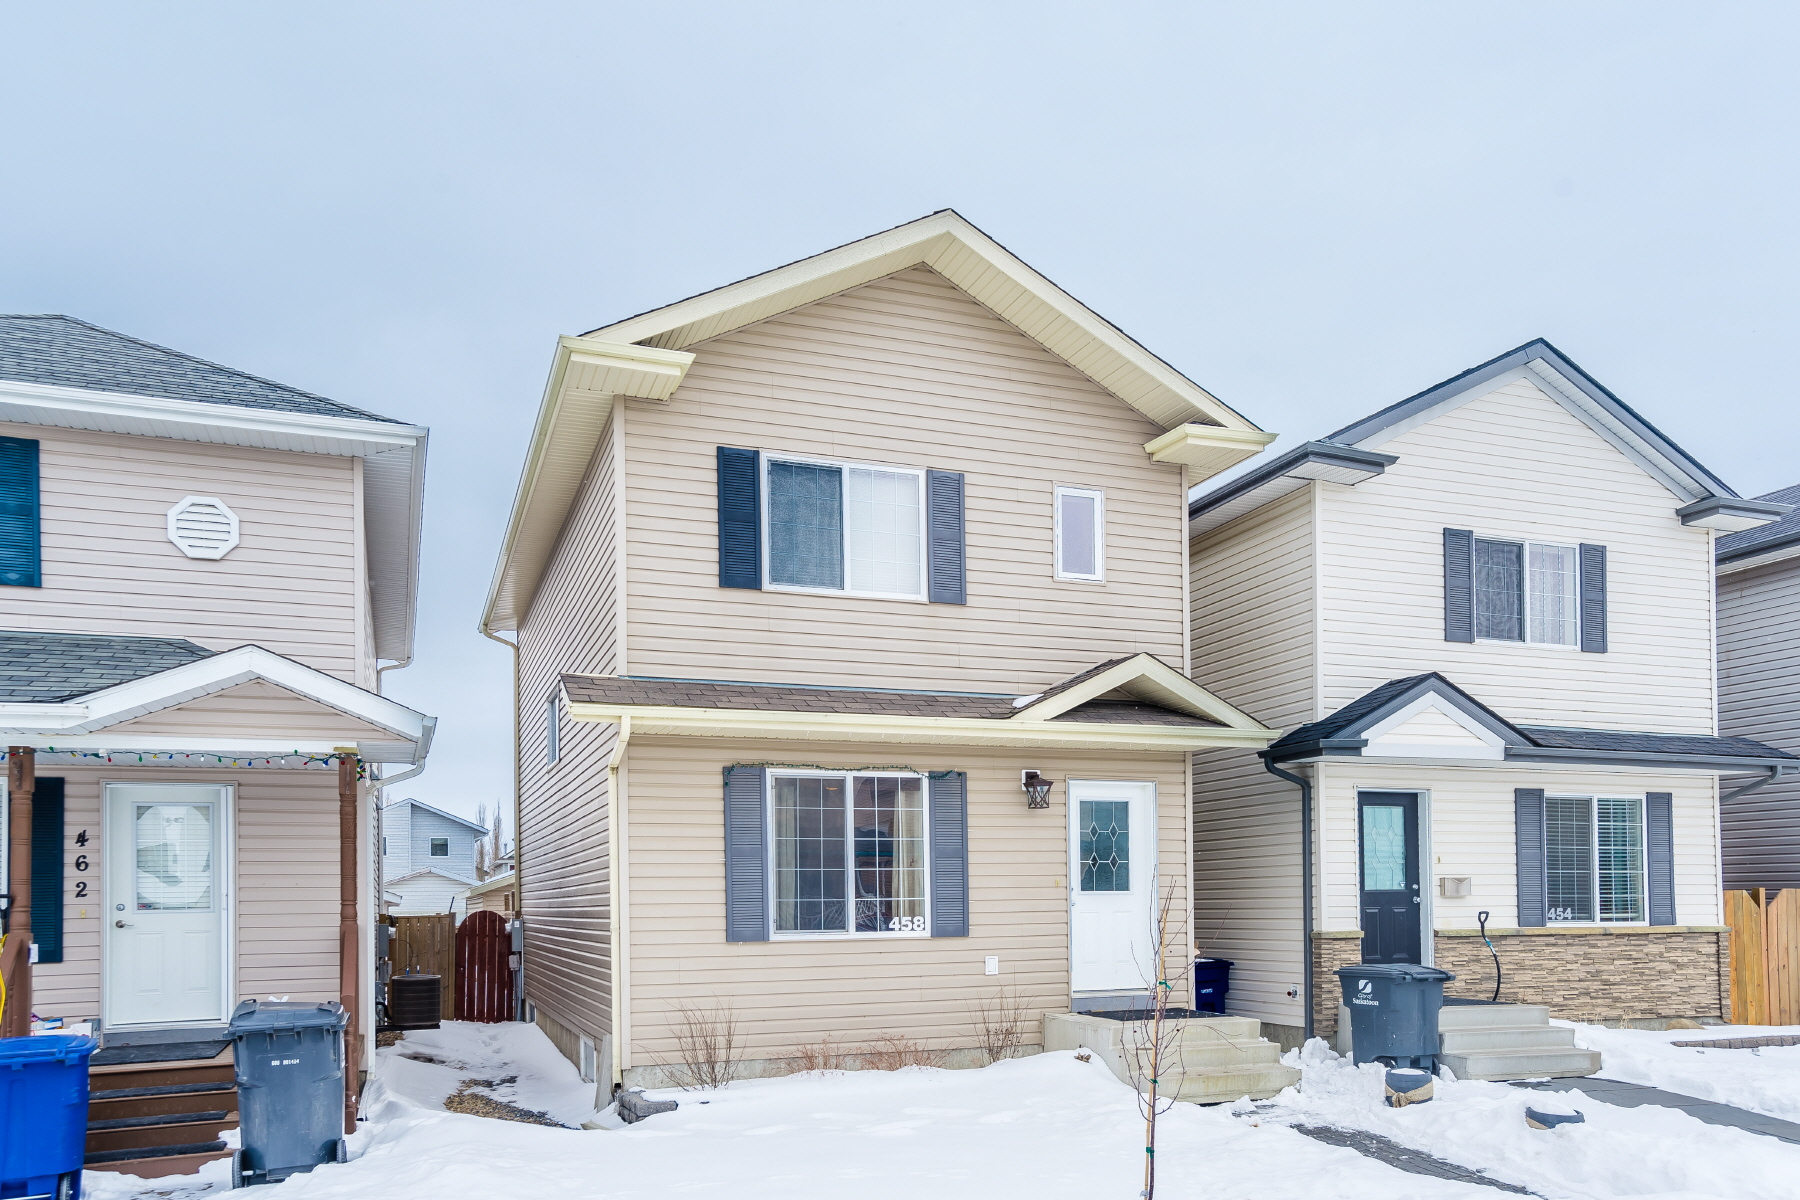 Main Photo: 458 Blakeney Crescent in Saskatoon: Confederation Park Residential for sale : MLS®# SK723767